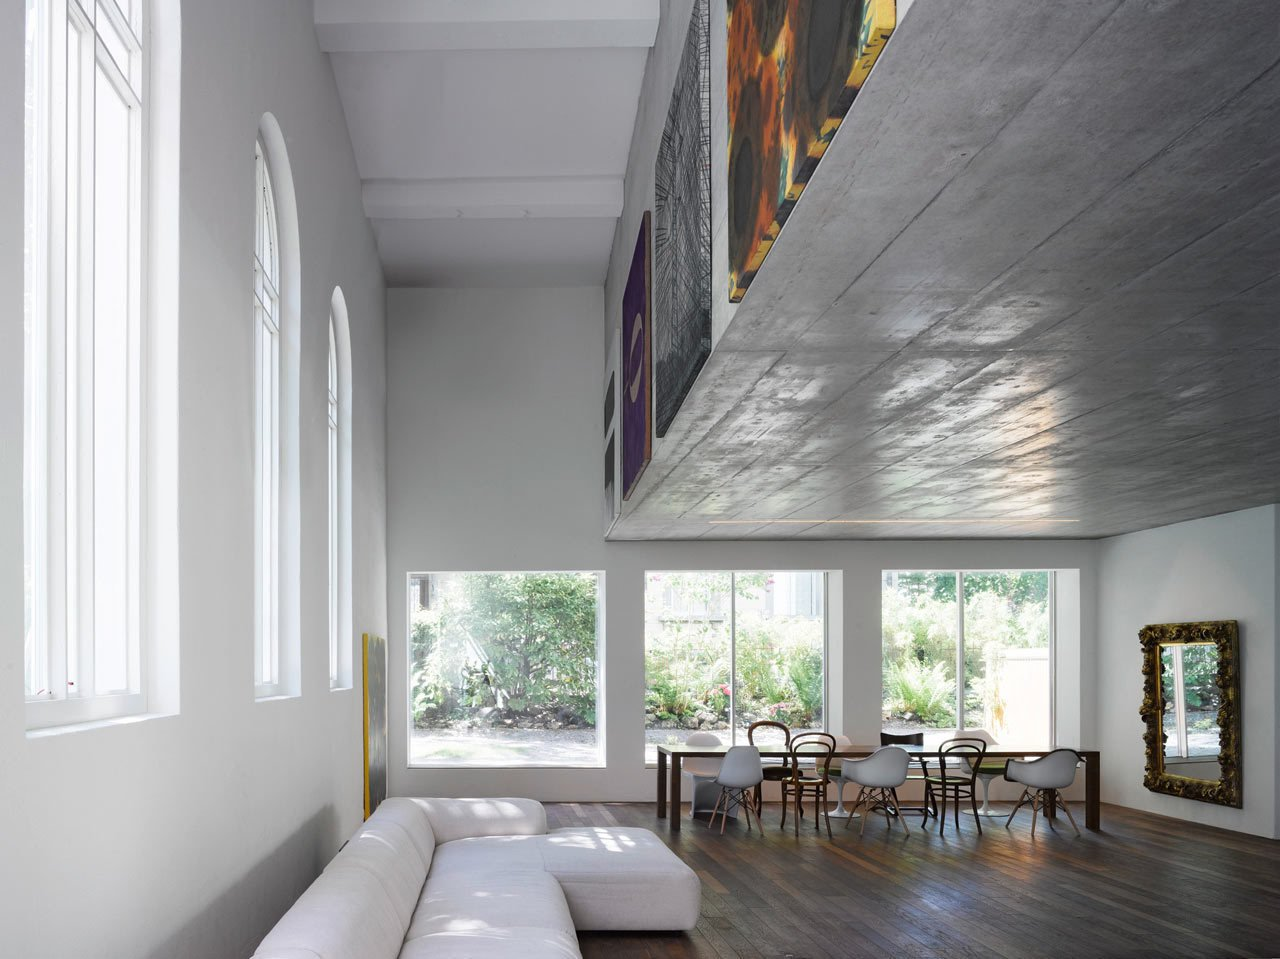 Located in Bern, Switzerland, the 1924 Luke Chapel went from rundown to two new modern homes by Morscher Architekten. To prevent covering the large church windows and to avoid adding support posts, the top apartment is suspended within a concrete box above. The box's facade was the perfect place to display artwork.  Photo 10 of 10 in Traditional Churches Become Modern Homes